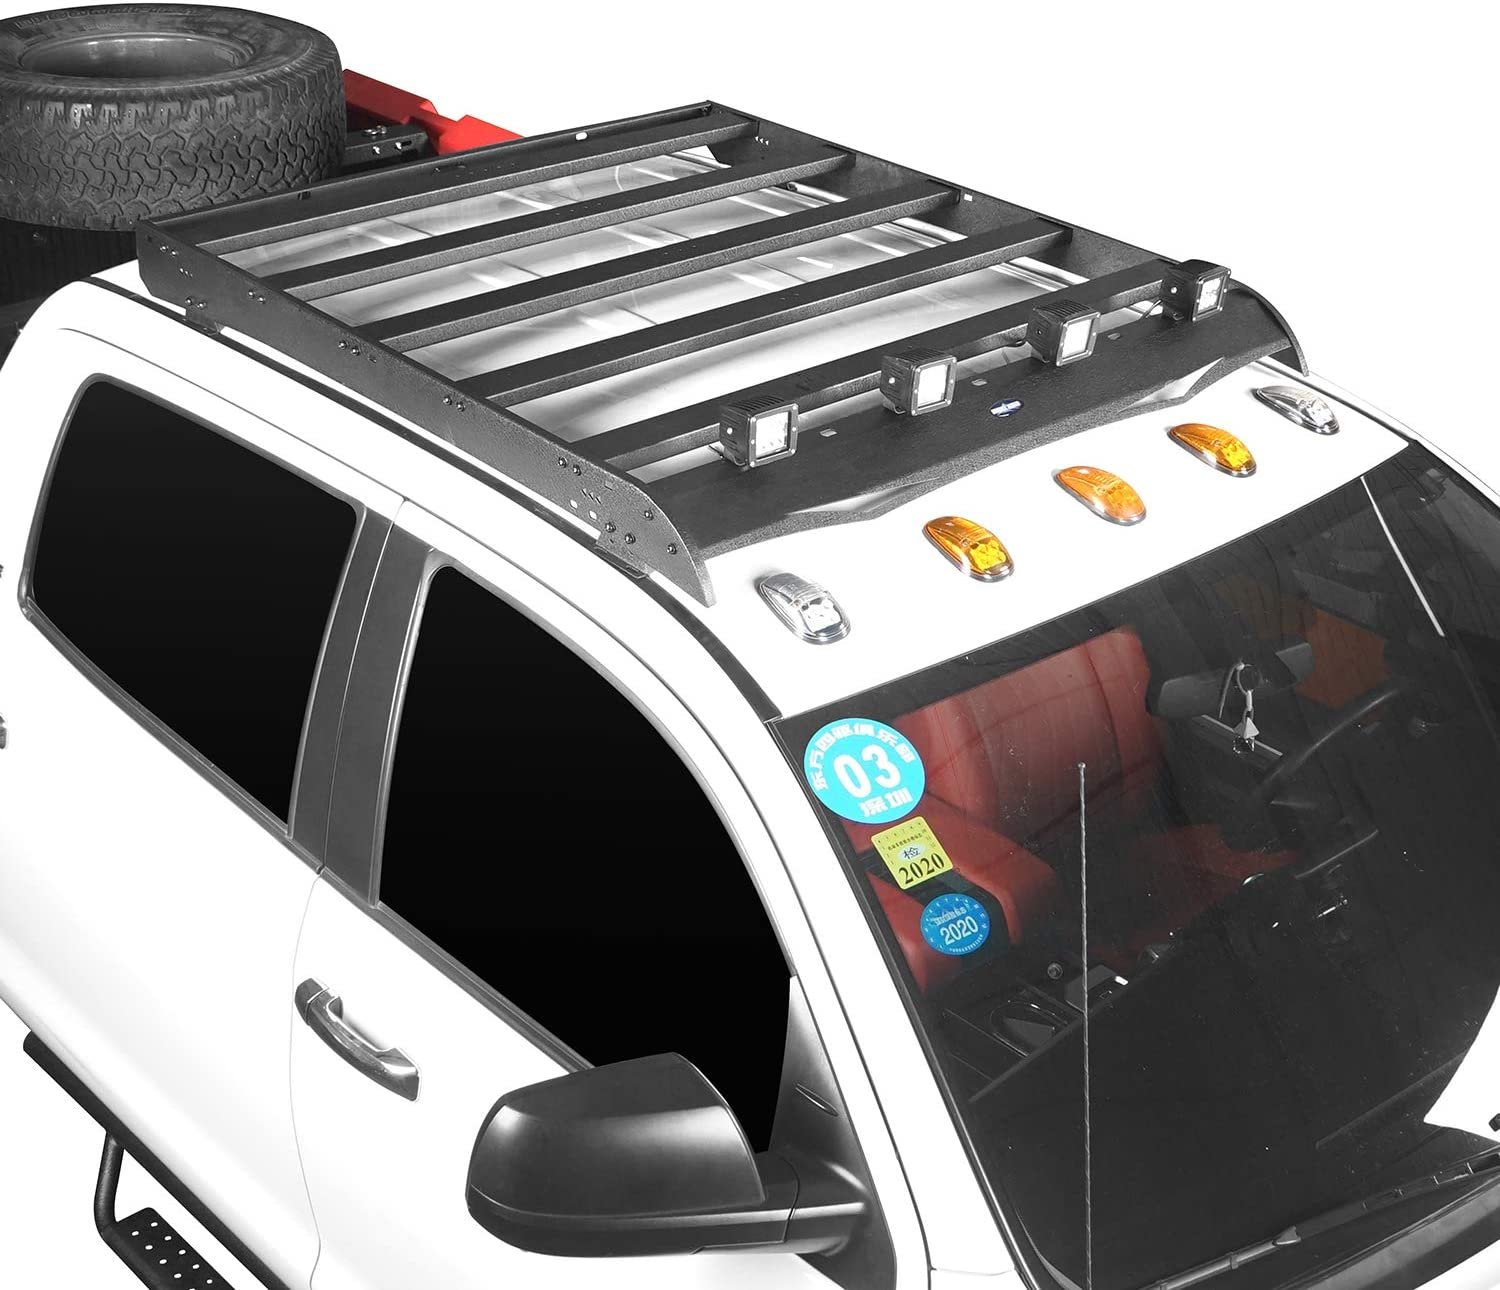 Hooke Road Tundra Top Roof Rack Cargo Carrier with 4/×18W LED Lights for 2014-2020 Tundra 4-Door Crewmax Pickup Truck